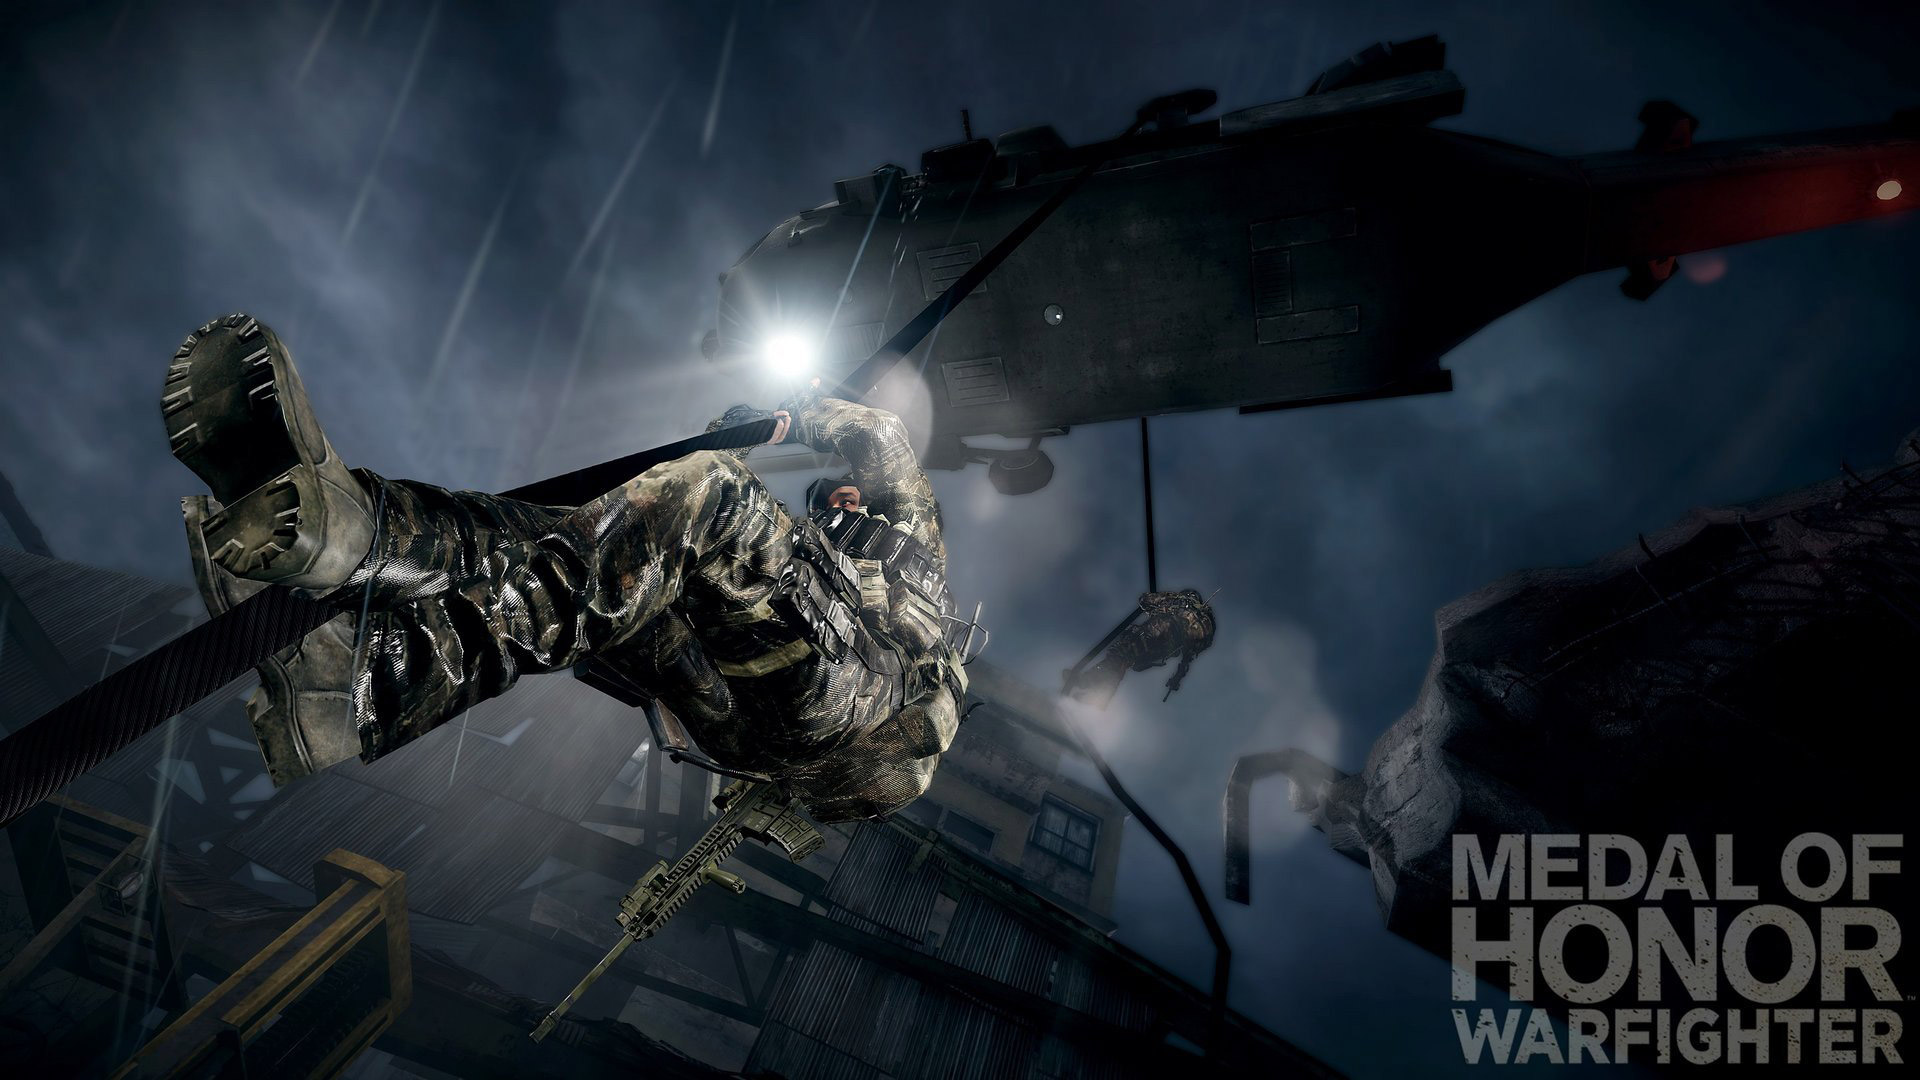 Free Medal of Honor: Warfighter Wallpaper in 1920x1080